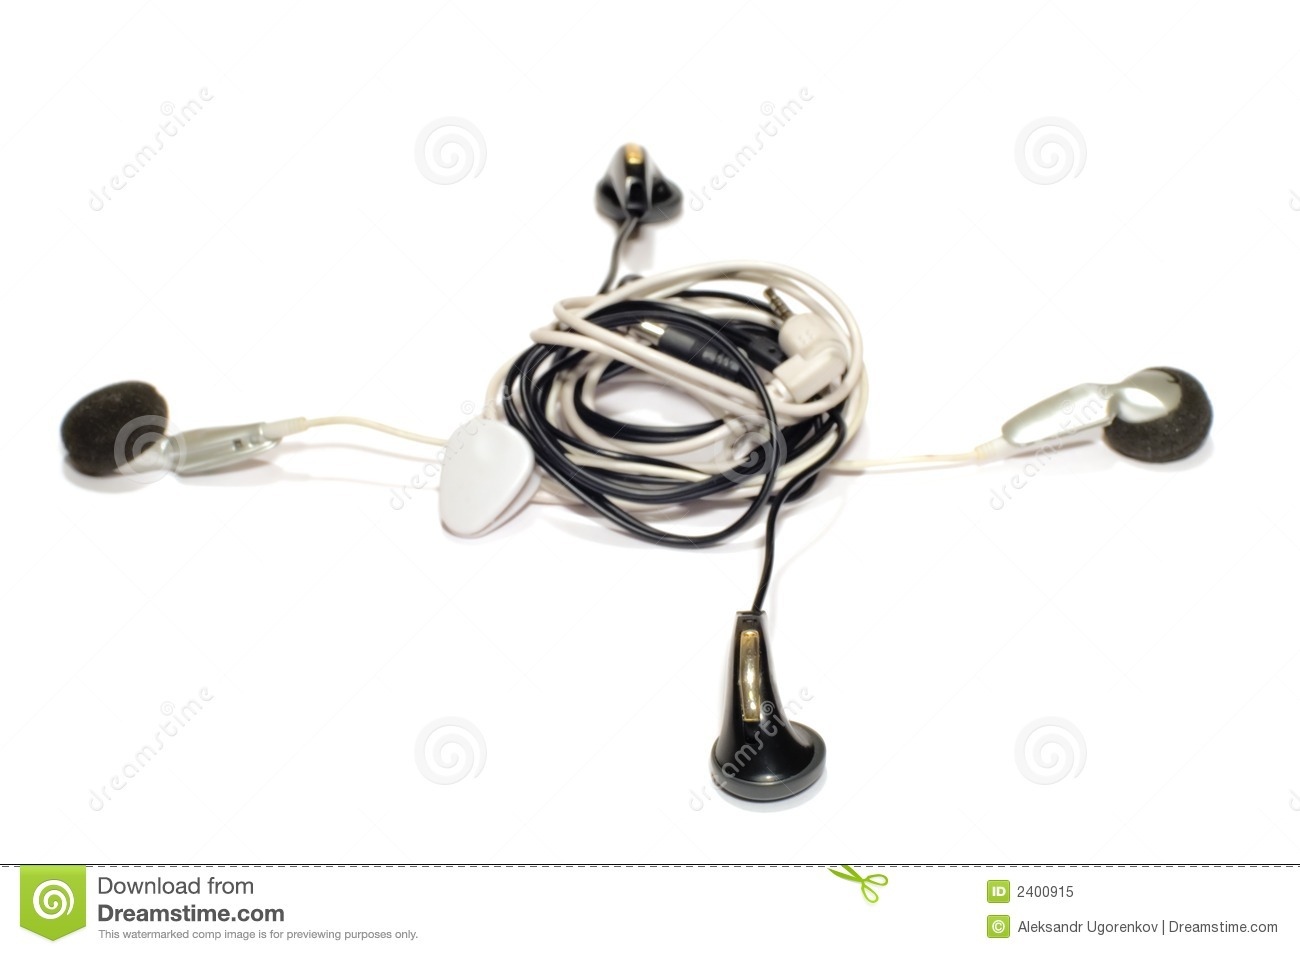 cable knot stock image image of phones headphones cable 2400915. Black Bedroom Furniture Sets. Home Design Ideas